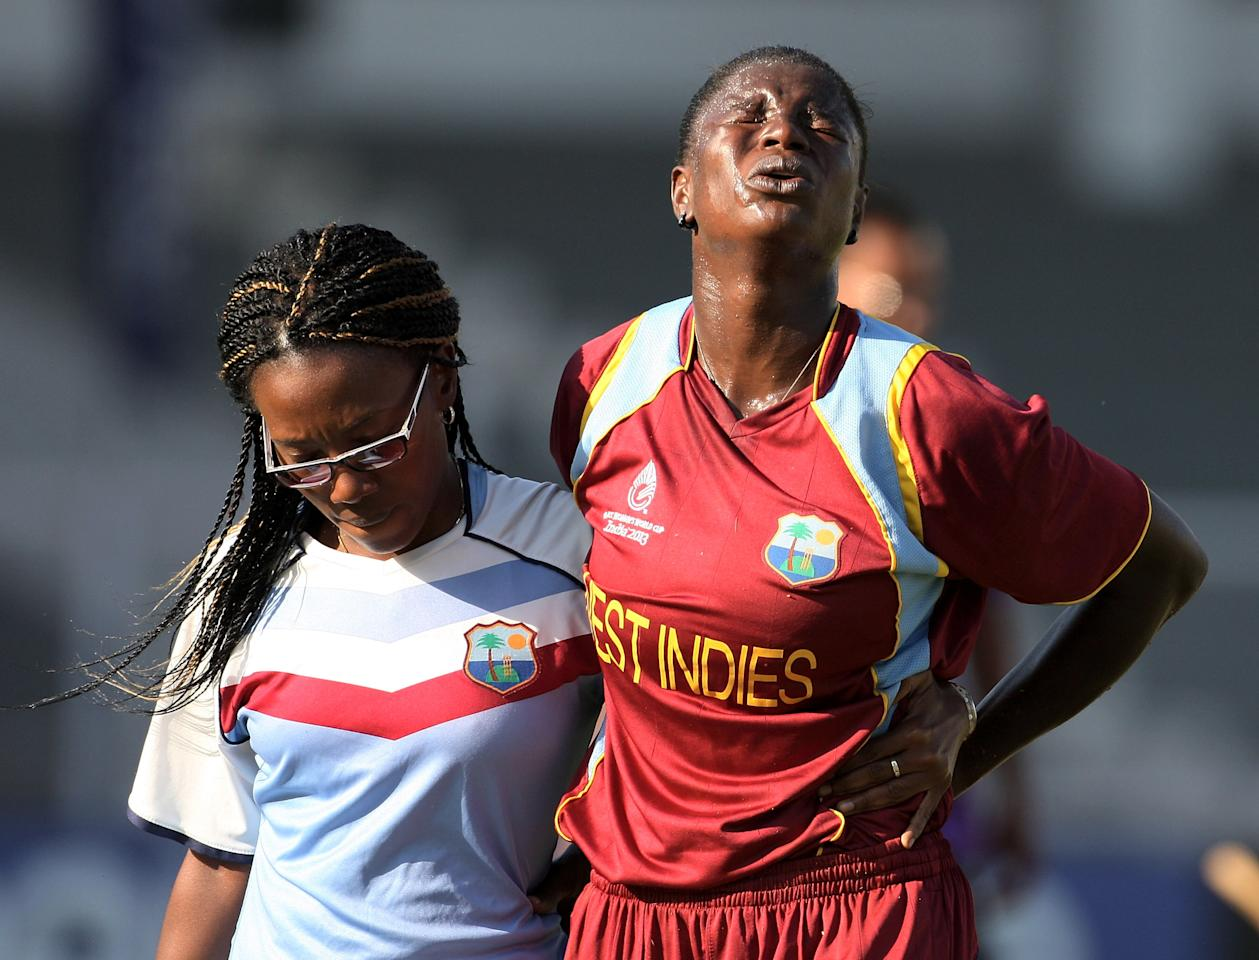 MUMBAI, INDIA - FEBRUARY 17: Tremayne Smartt of West Indies after injuring her back leaves the field during the final between Australia and West Indies of the Women's World Cup India 2013 played at the Cricket Club of India ground on February 17, 2013 in Mumbai, India. (Photo by Graham Crouch/ICC via Getty Images)